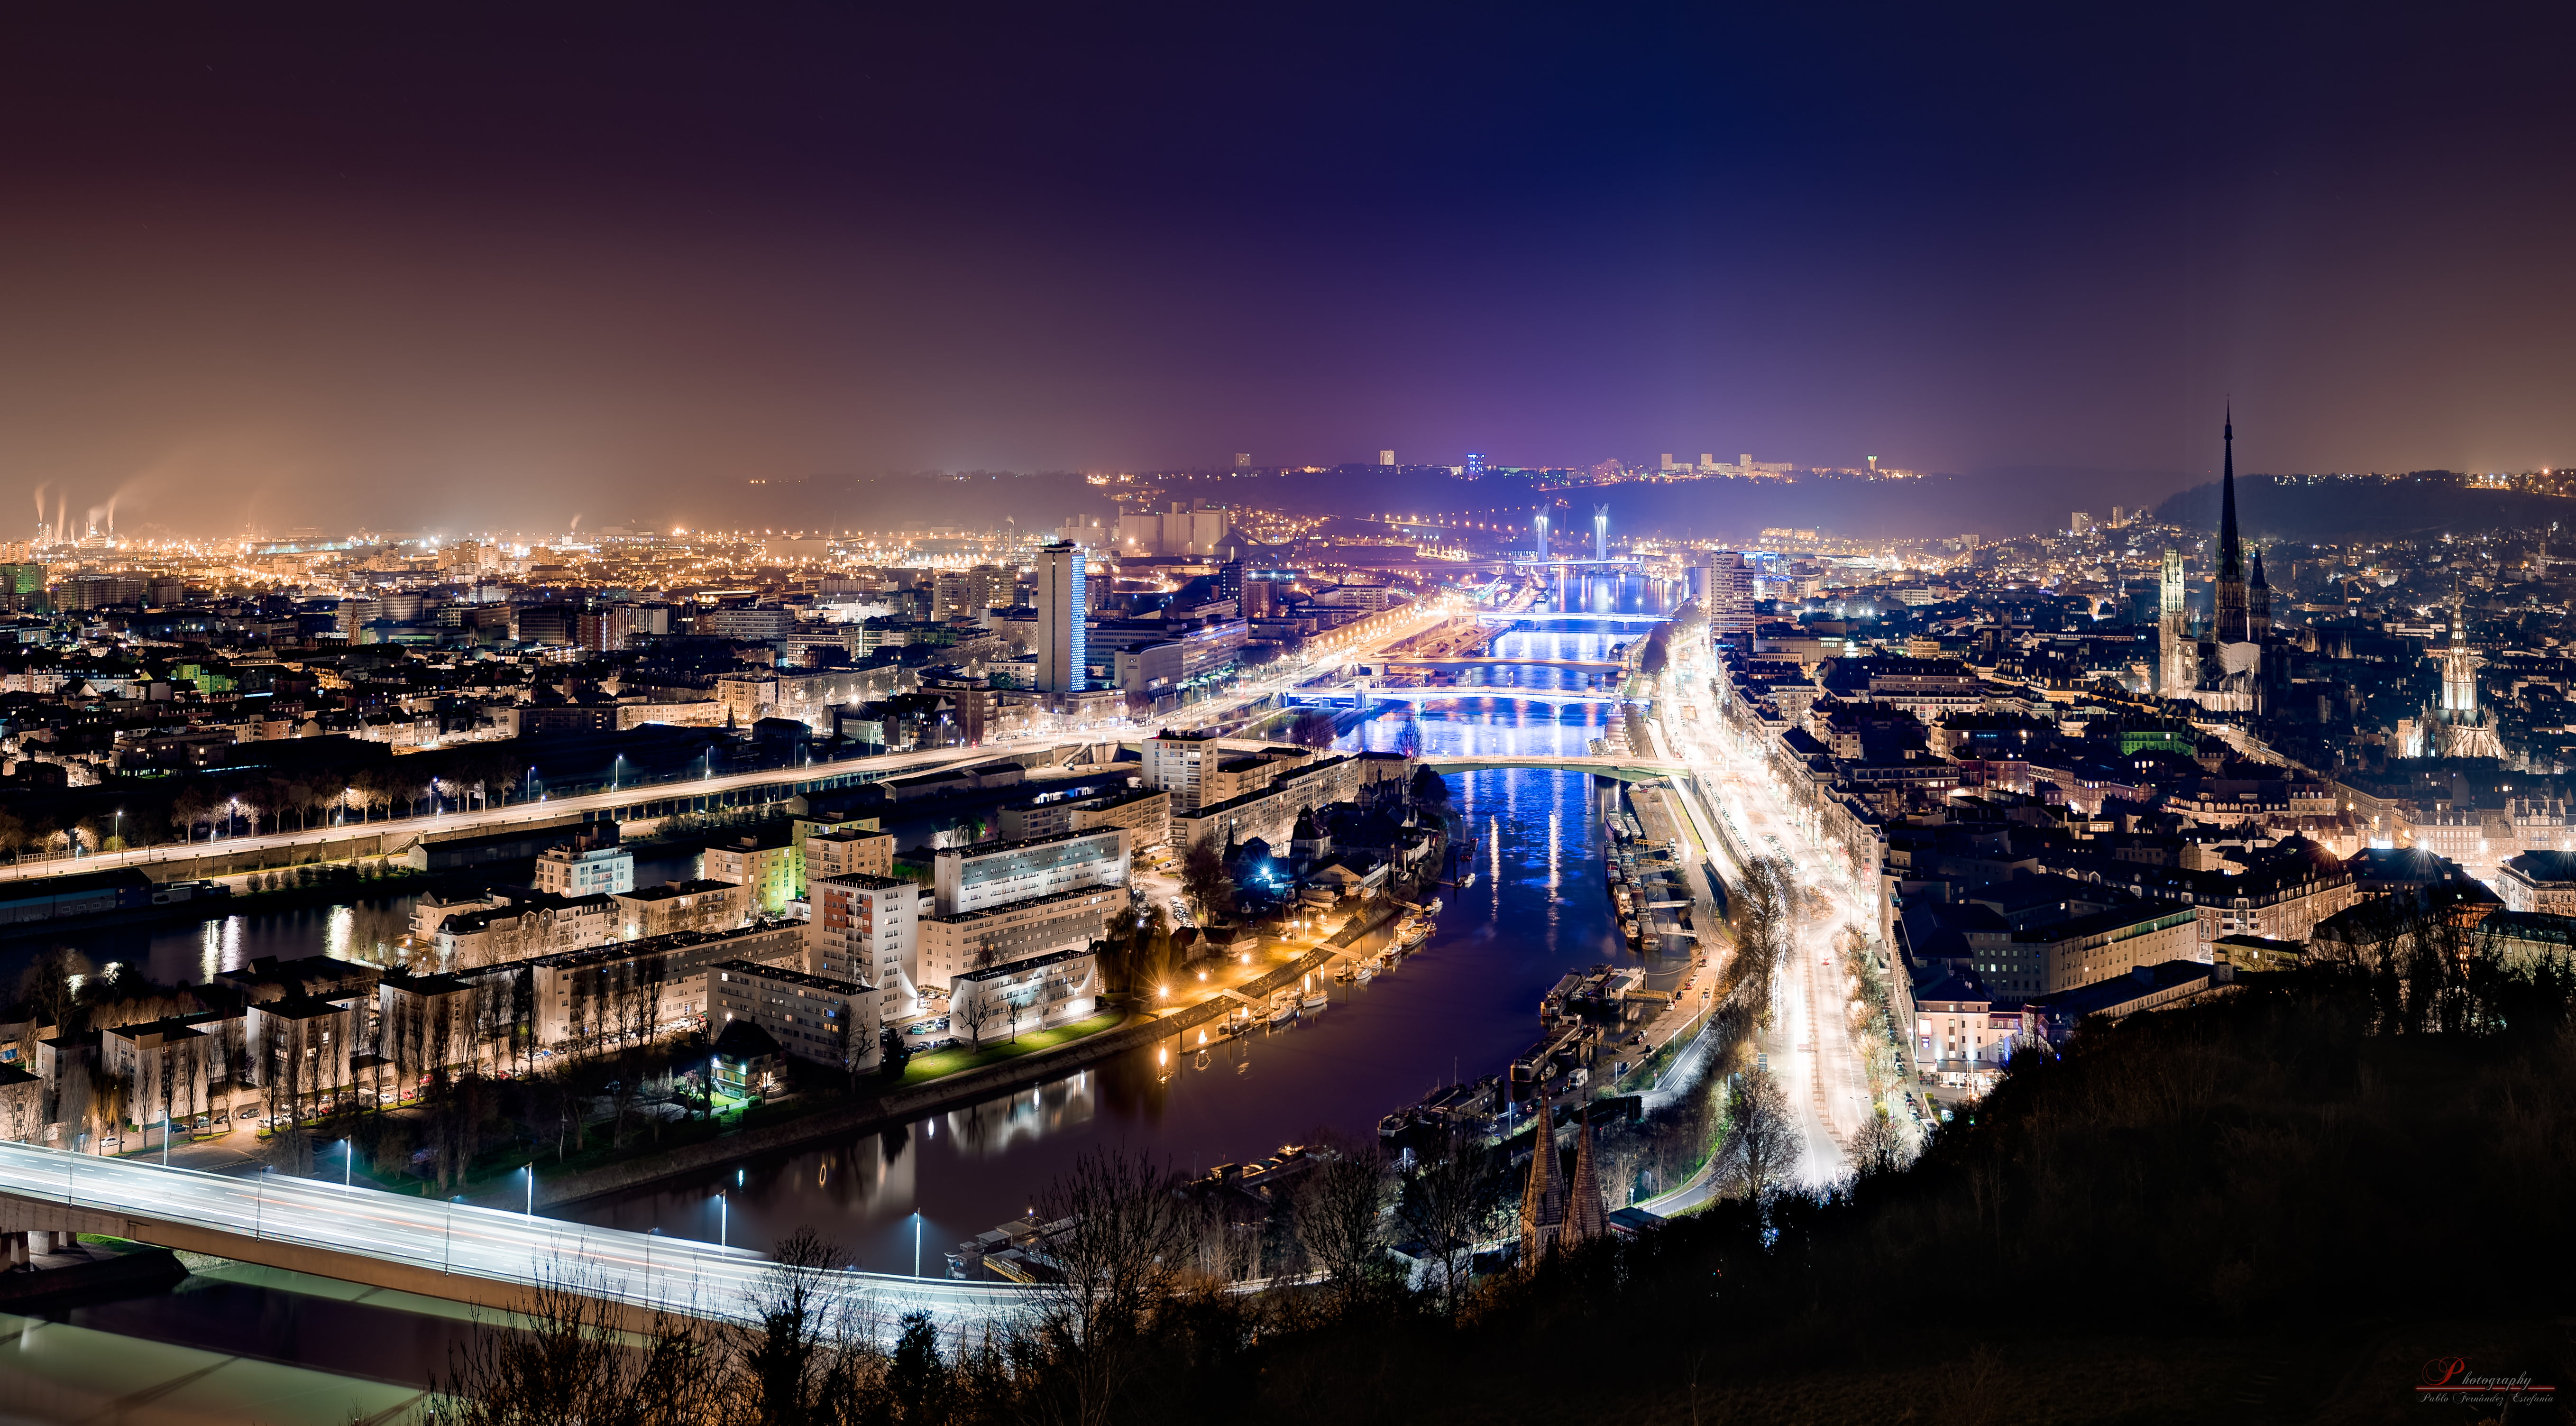 Time lapse photography of city at night rouen HD wallpaper 5433x3007